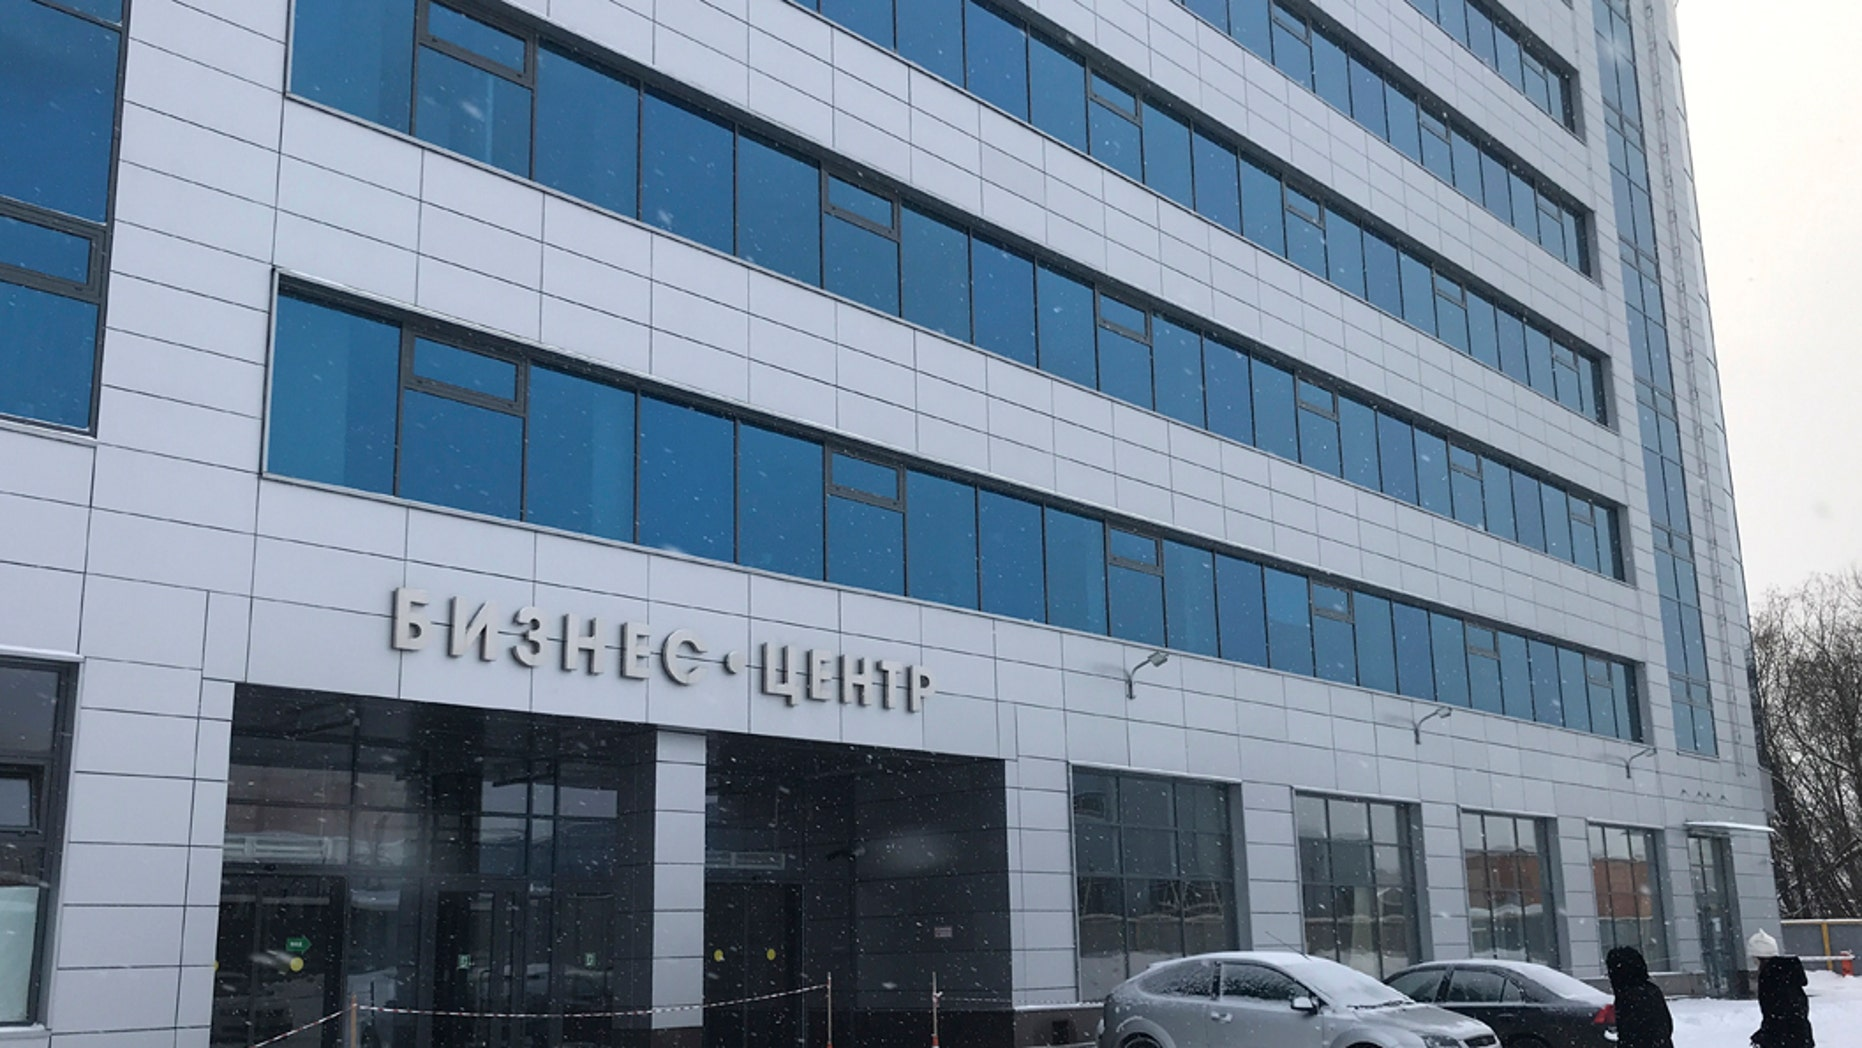 """A view of a Buisness center, believed to be the location of the new """"troll factory"""" in St.Petersburg, Russia, Sunday, Feb. 18, 2018.  The U.S. government allege the Internet Research Agency started interfering as early as 2014 in U.S. politics, extending to the 2016 presidential election, saying the agency was funded by a St. Petersburg businessman Yevgeny Prigozhin. (AP Photo/Mstyslav Chernov)"""